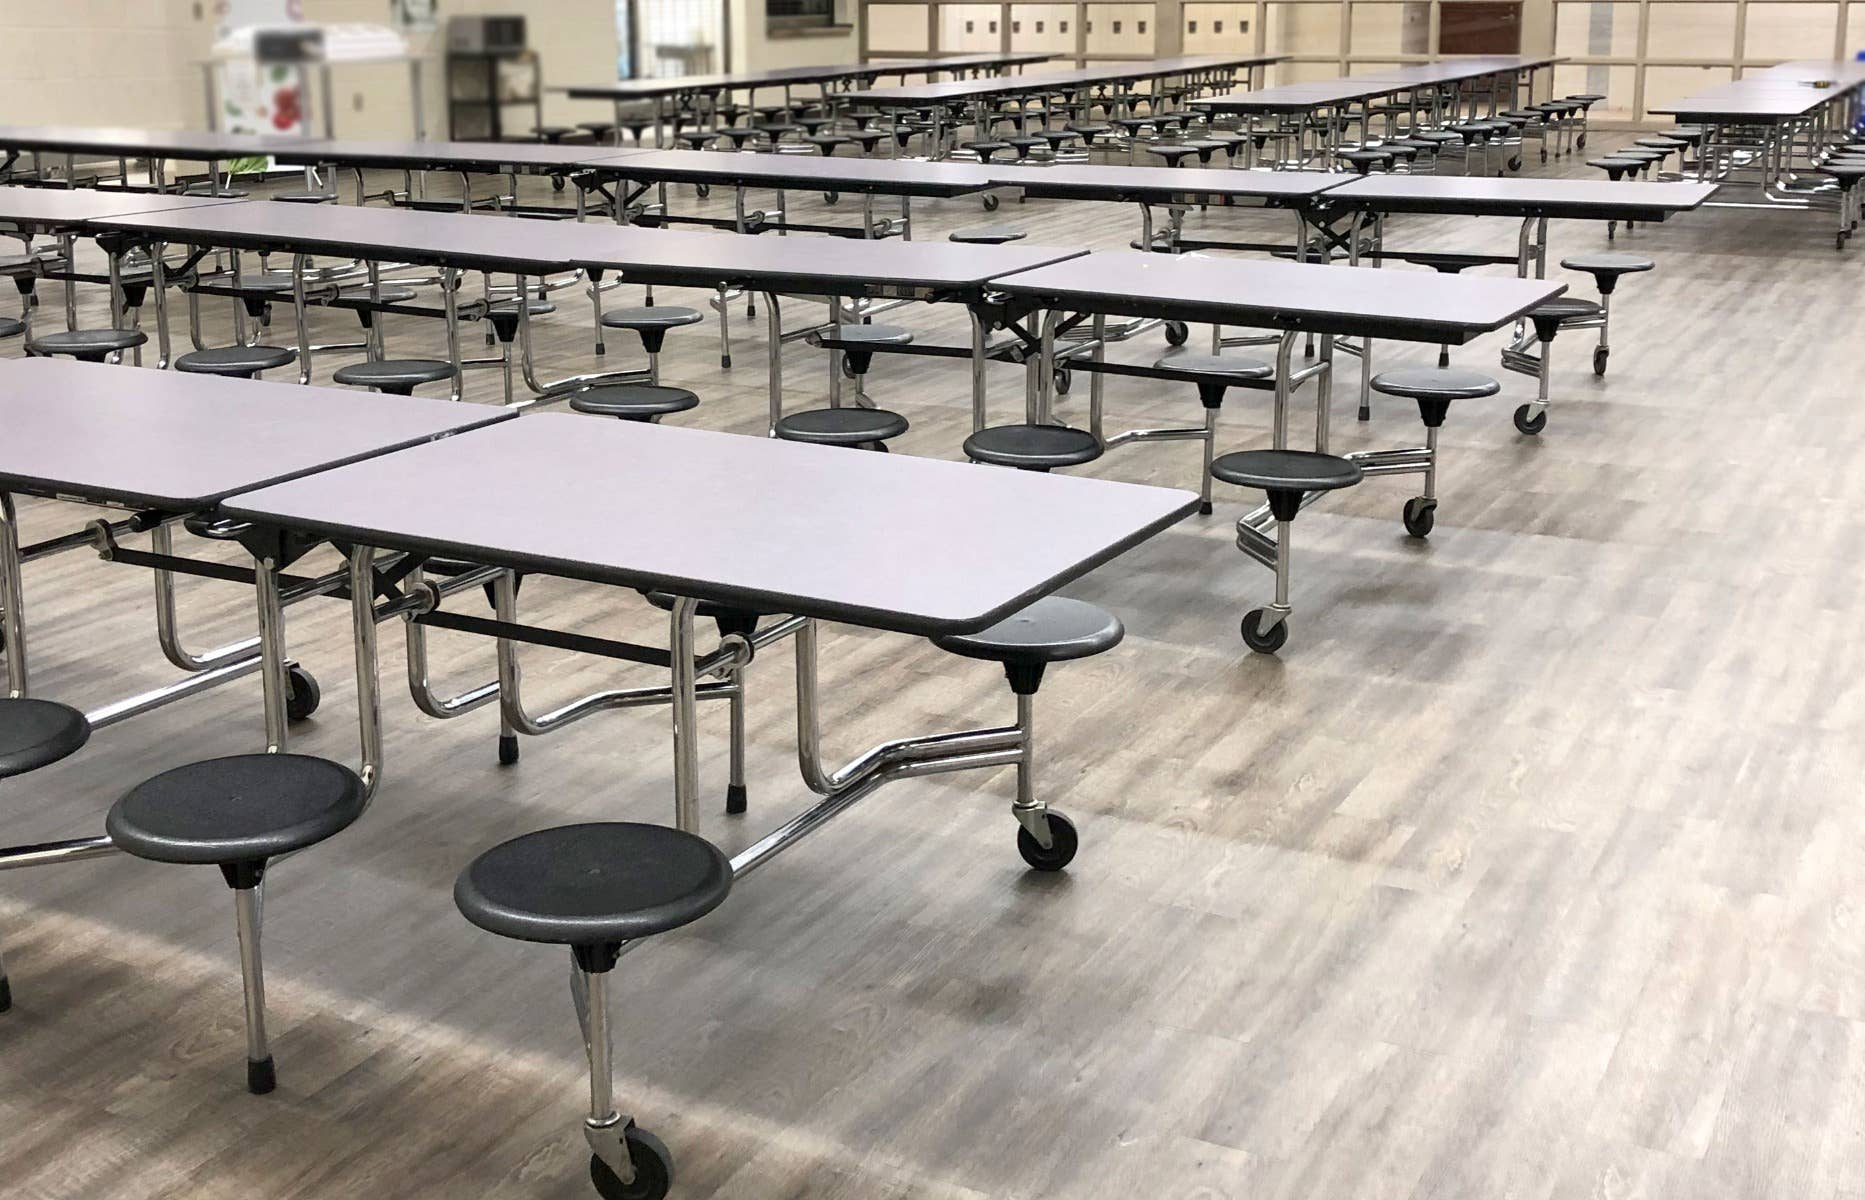 How to Renovate Cafeteria Tables - Finished tables